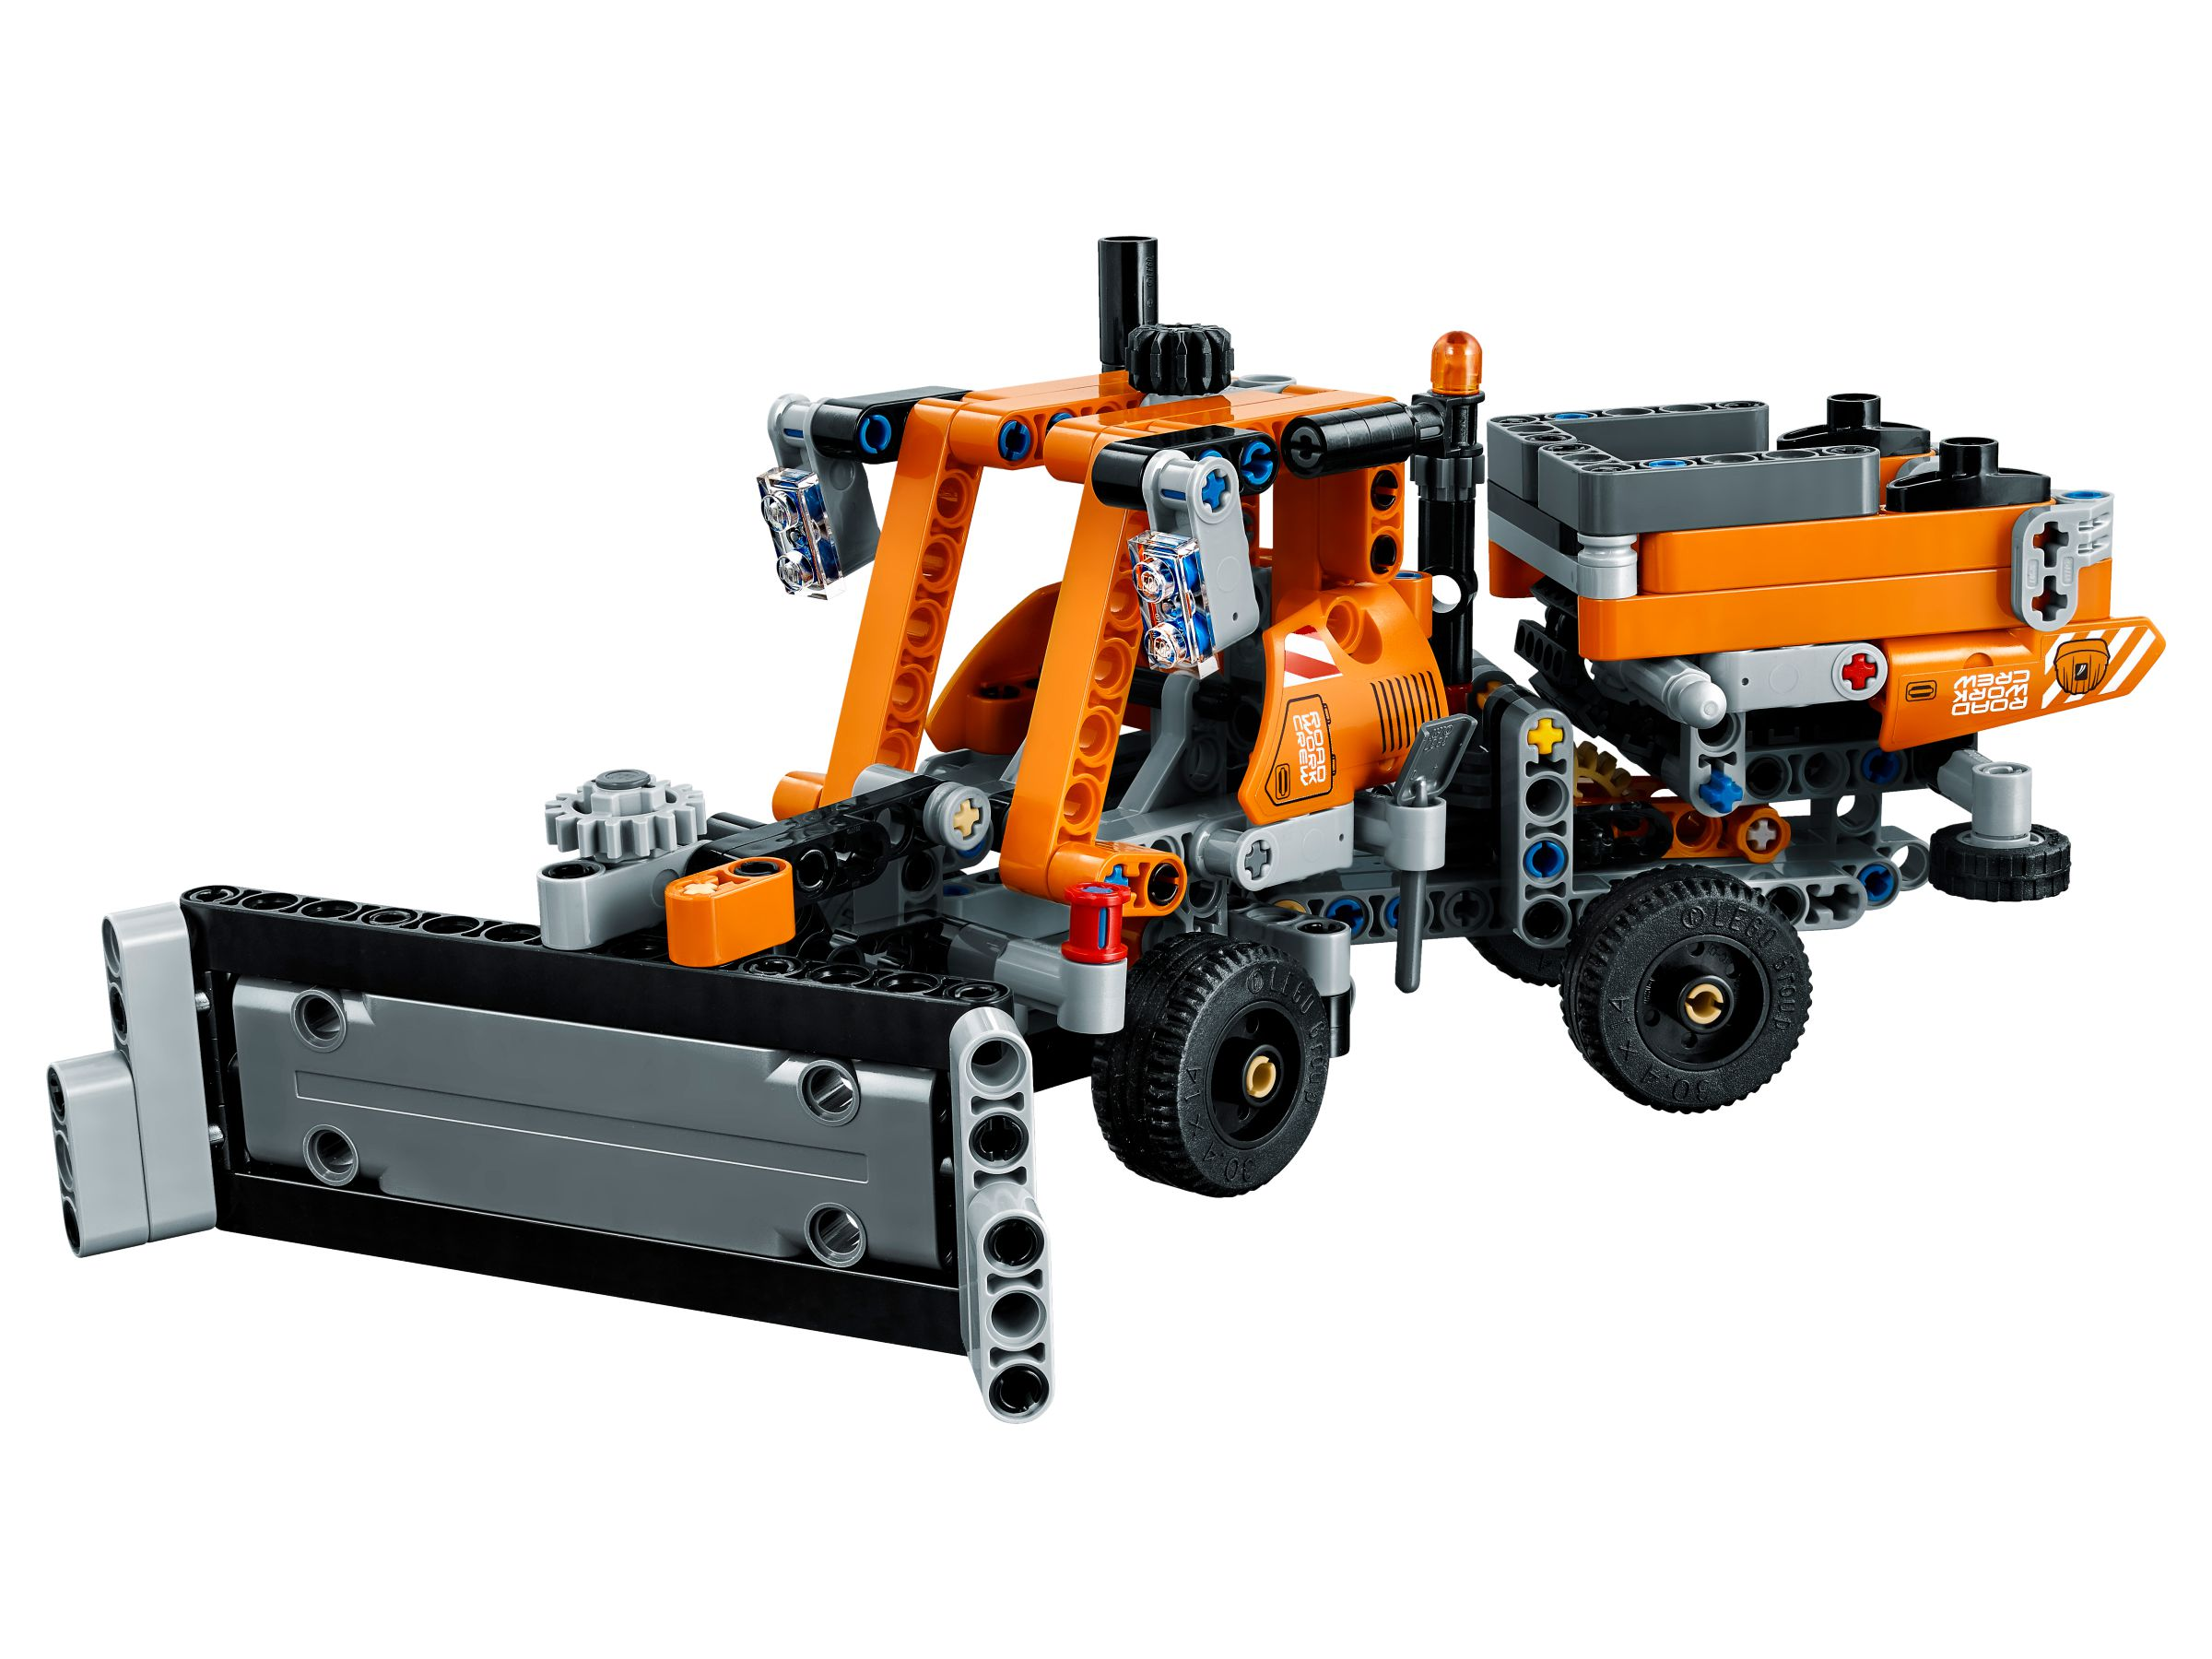 lego technic 42060 stra enbau fahrzeuge mit bildern. Black Bedroom Furniture Sets. Home Design Ideas